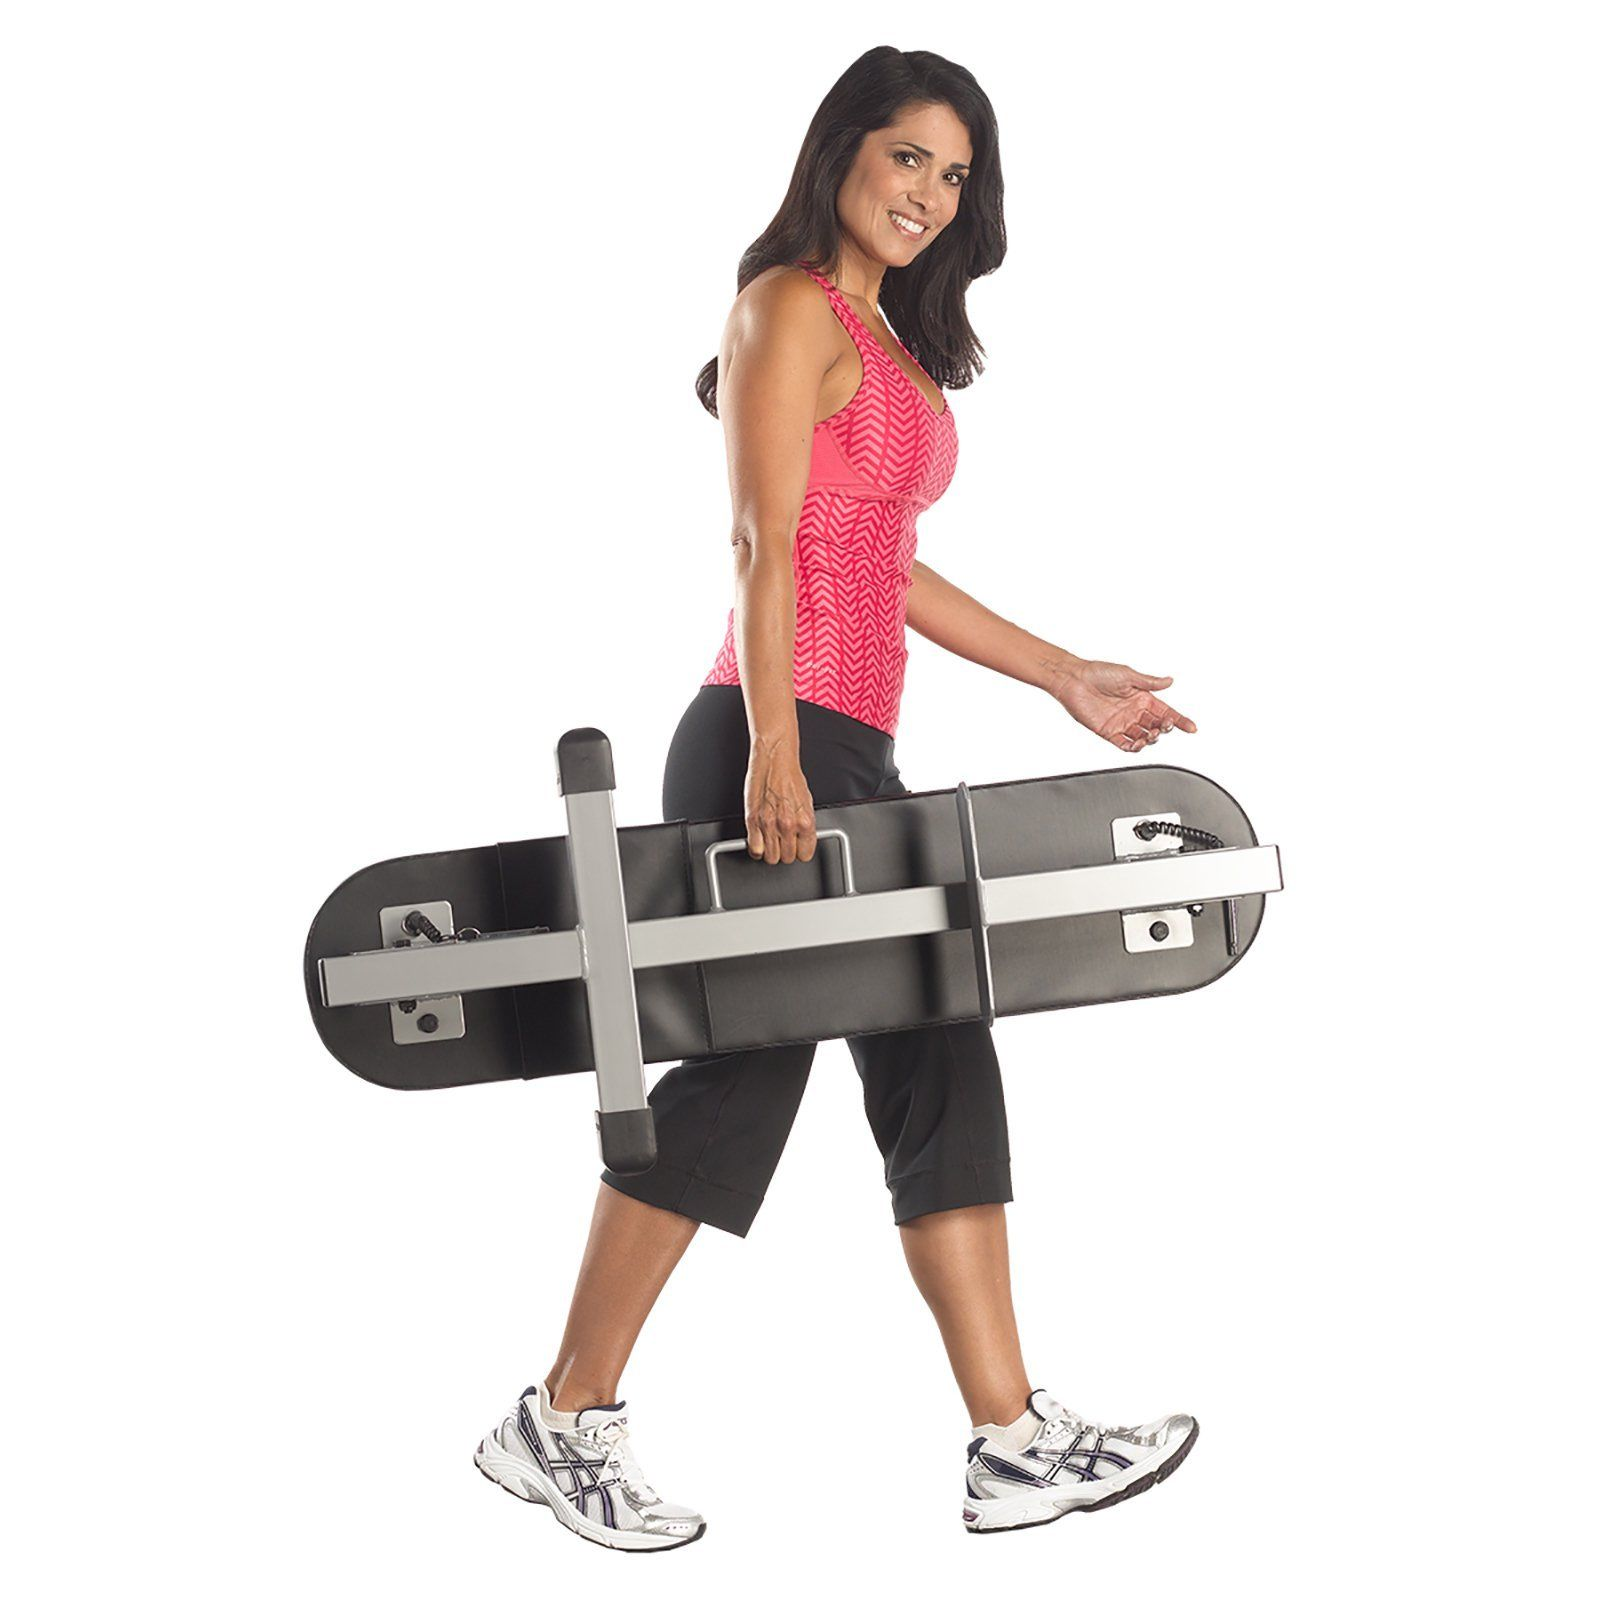 Powerblock Travel Bench Physique Fitness Stores Since 1962